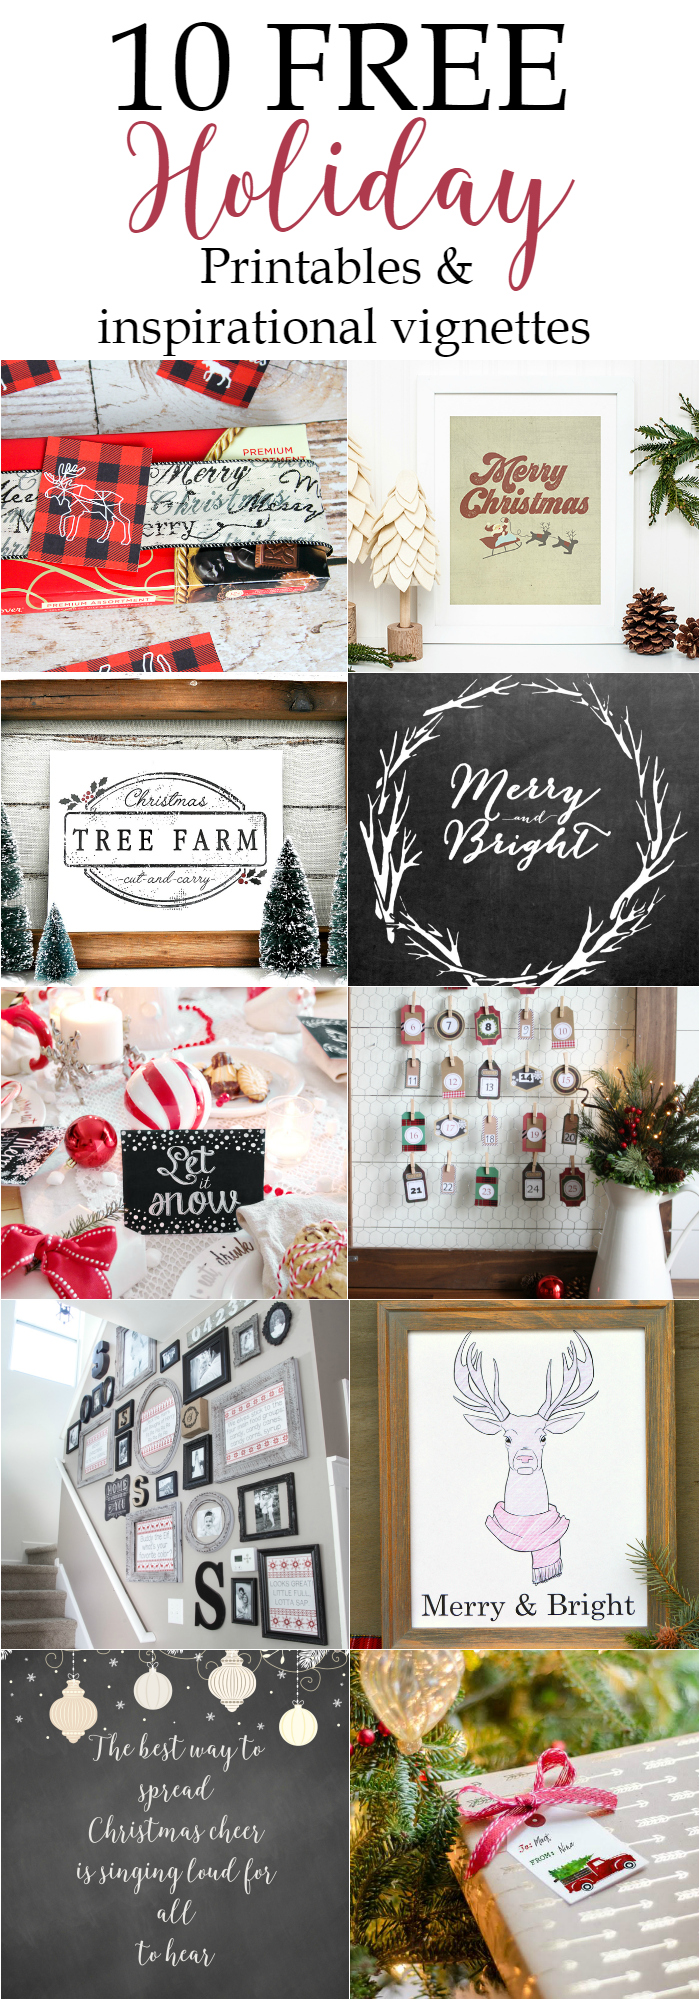 Get your 10 free holiday printables with gorgeous and inspiring holiday vignettes via dandelionpatina.com #freeprintable #holiday